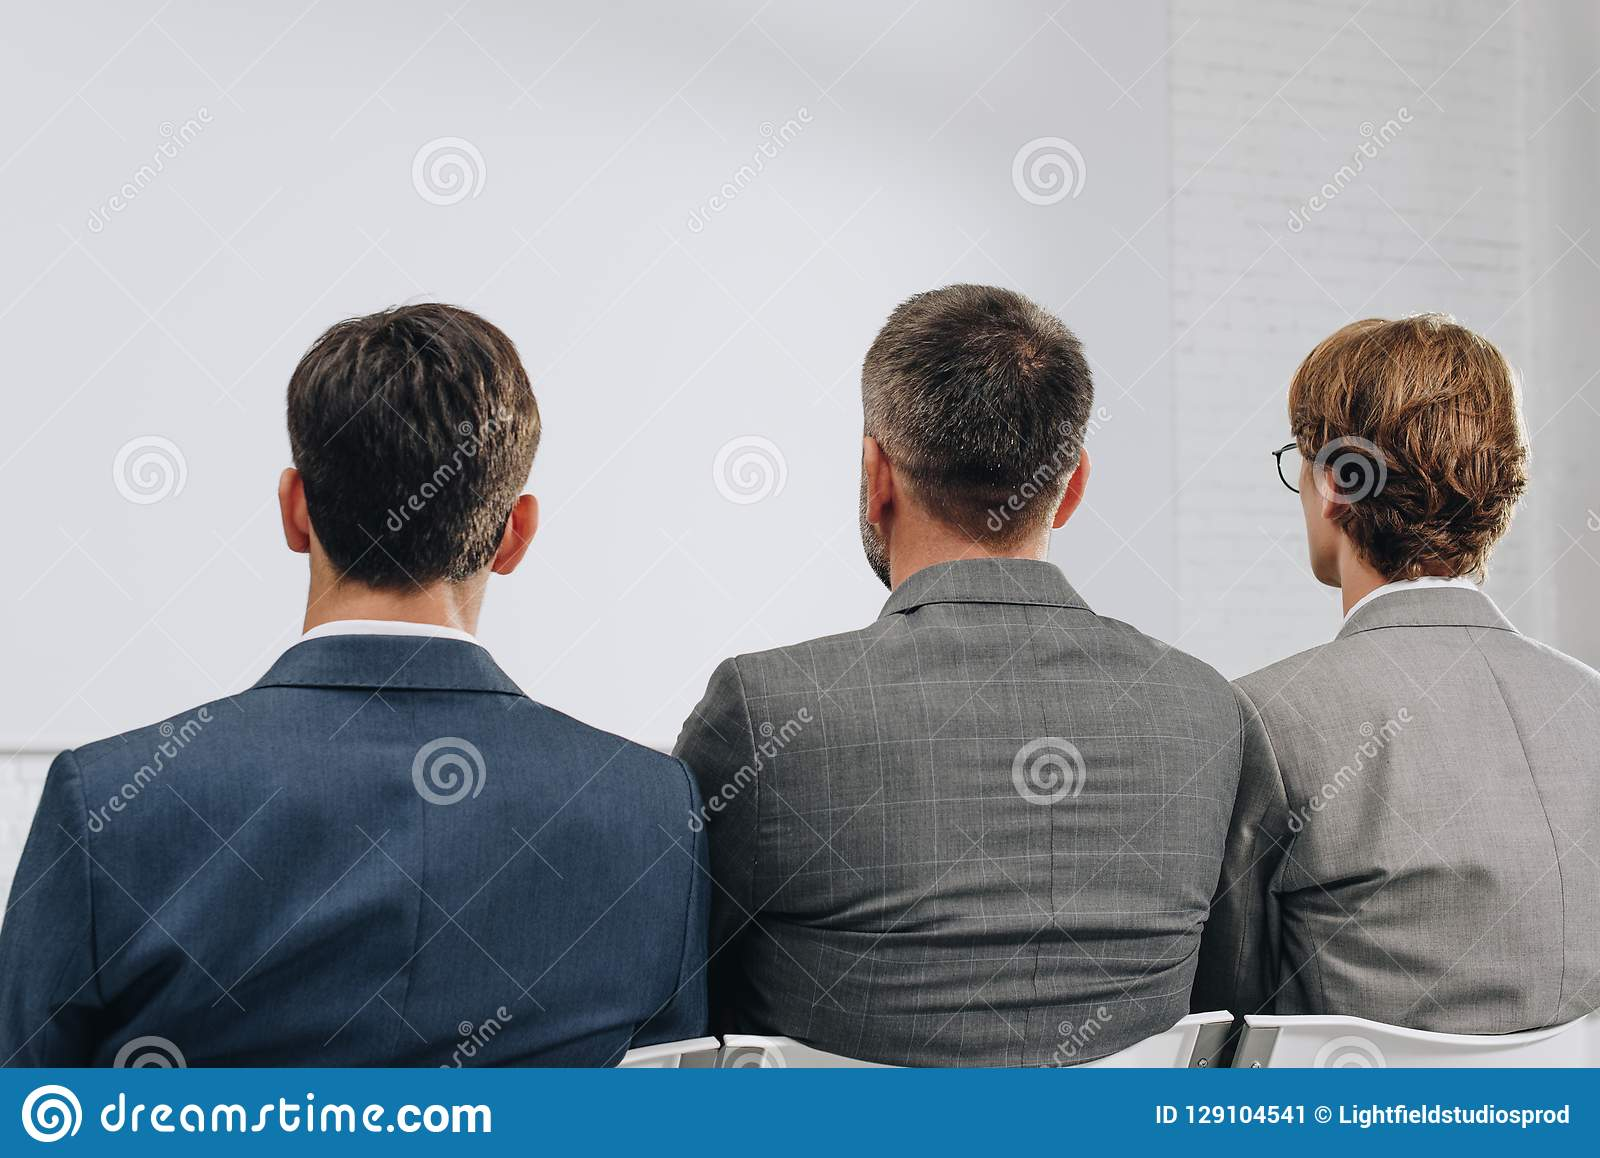 rear view of three businessmen sitting on chairs during training